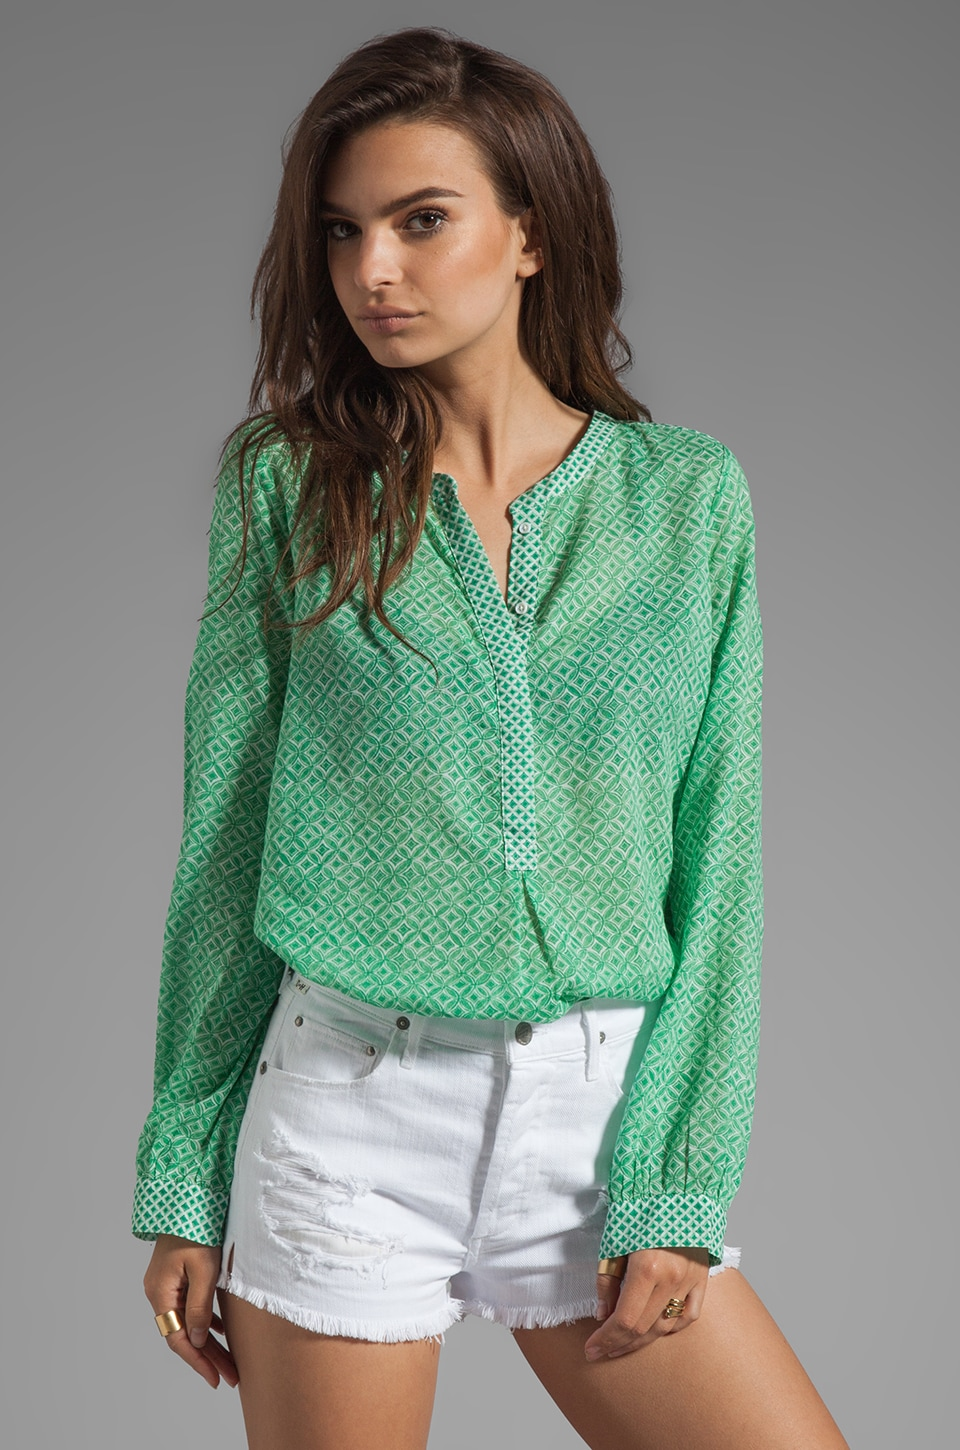 Joie Jira Diamond Print Blouse in Jungle Green